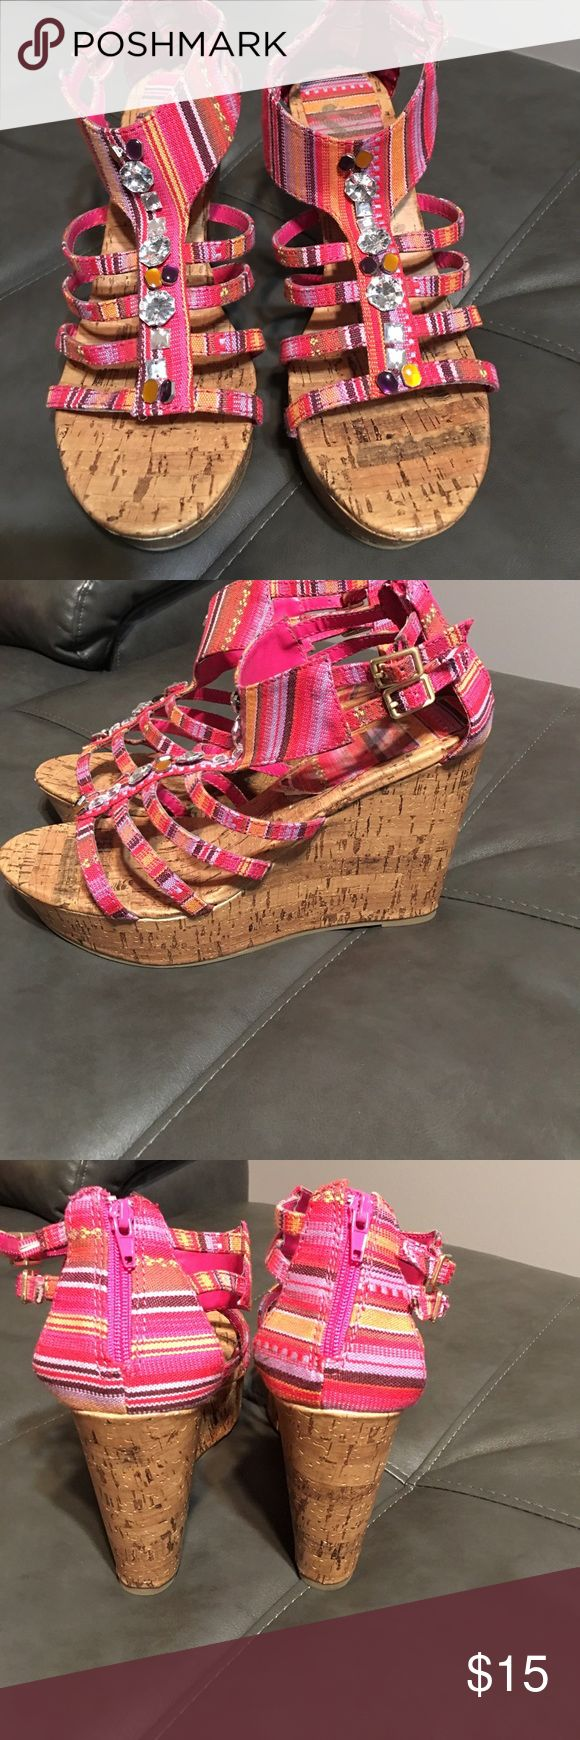 Super cute striped wedges with jewels Wedges in great condition Shoes Wedges